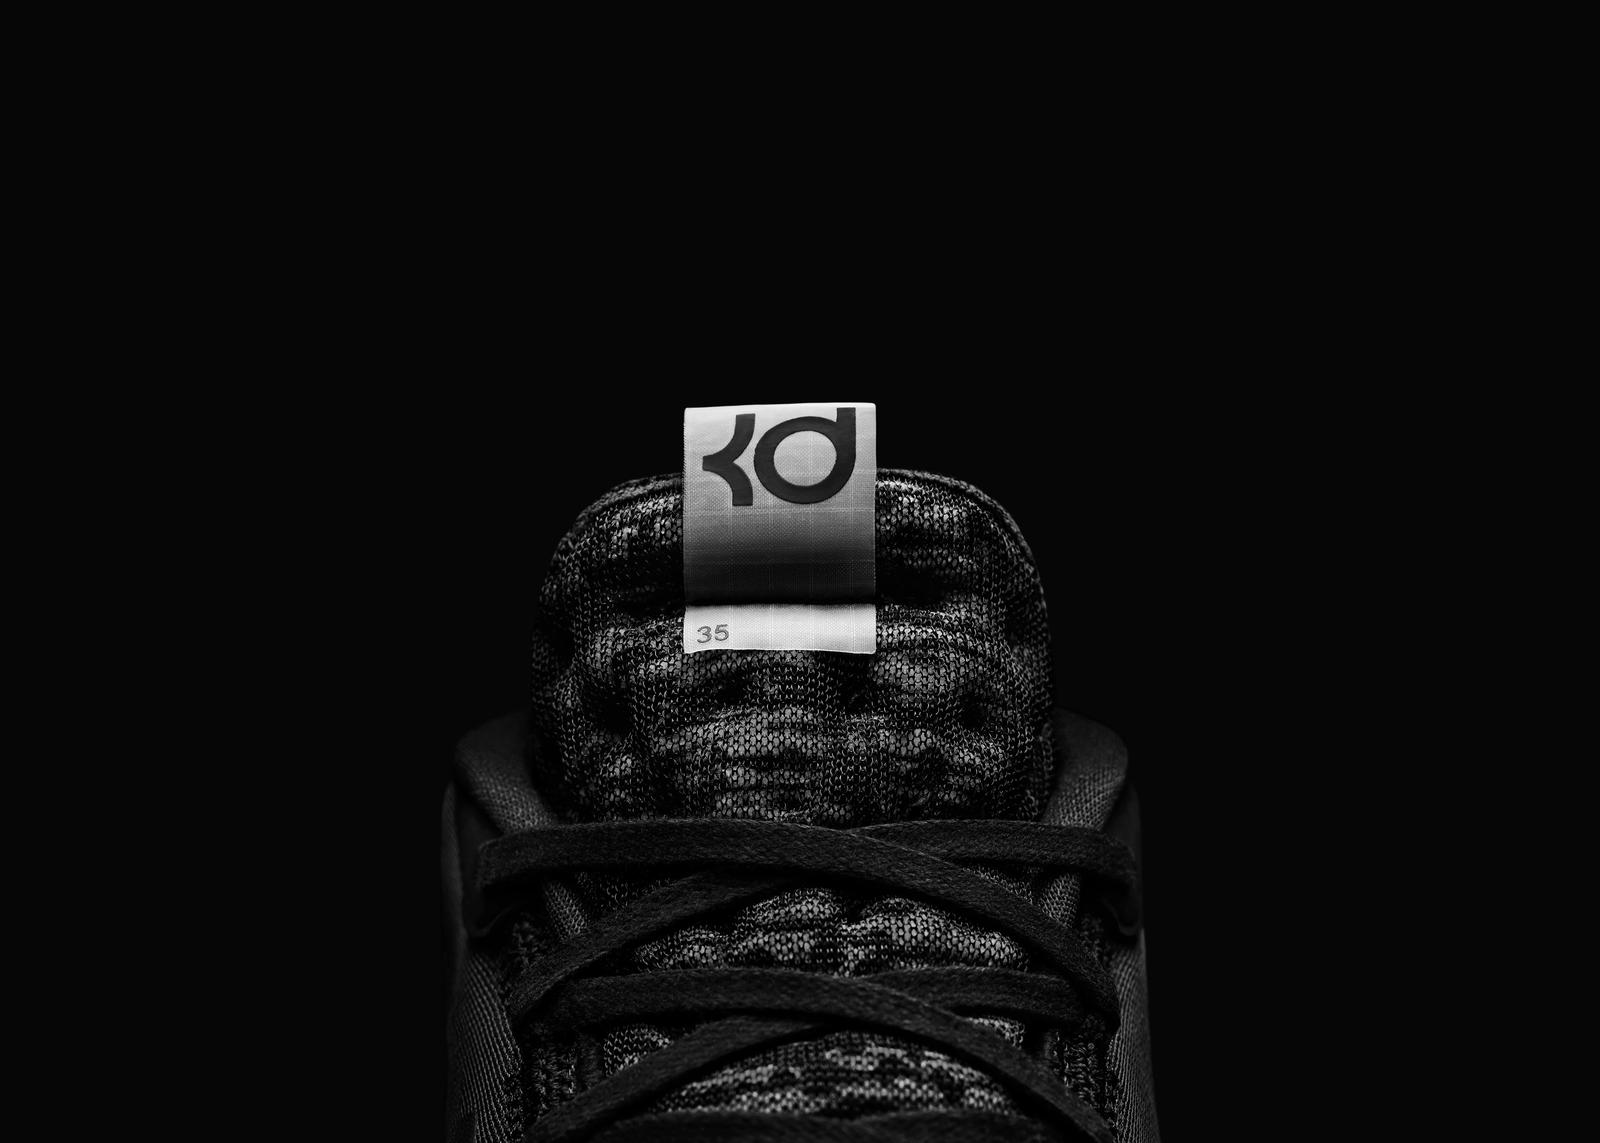 Behind The KD12 6